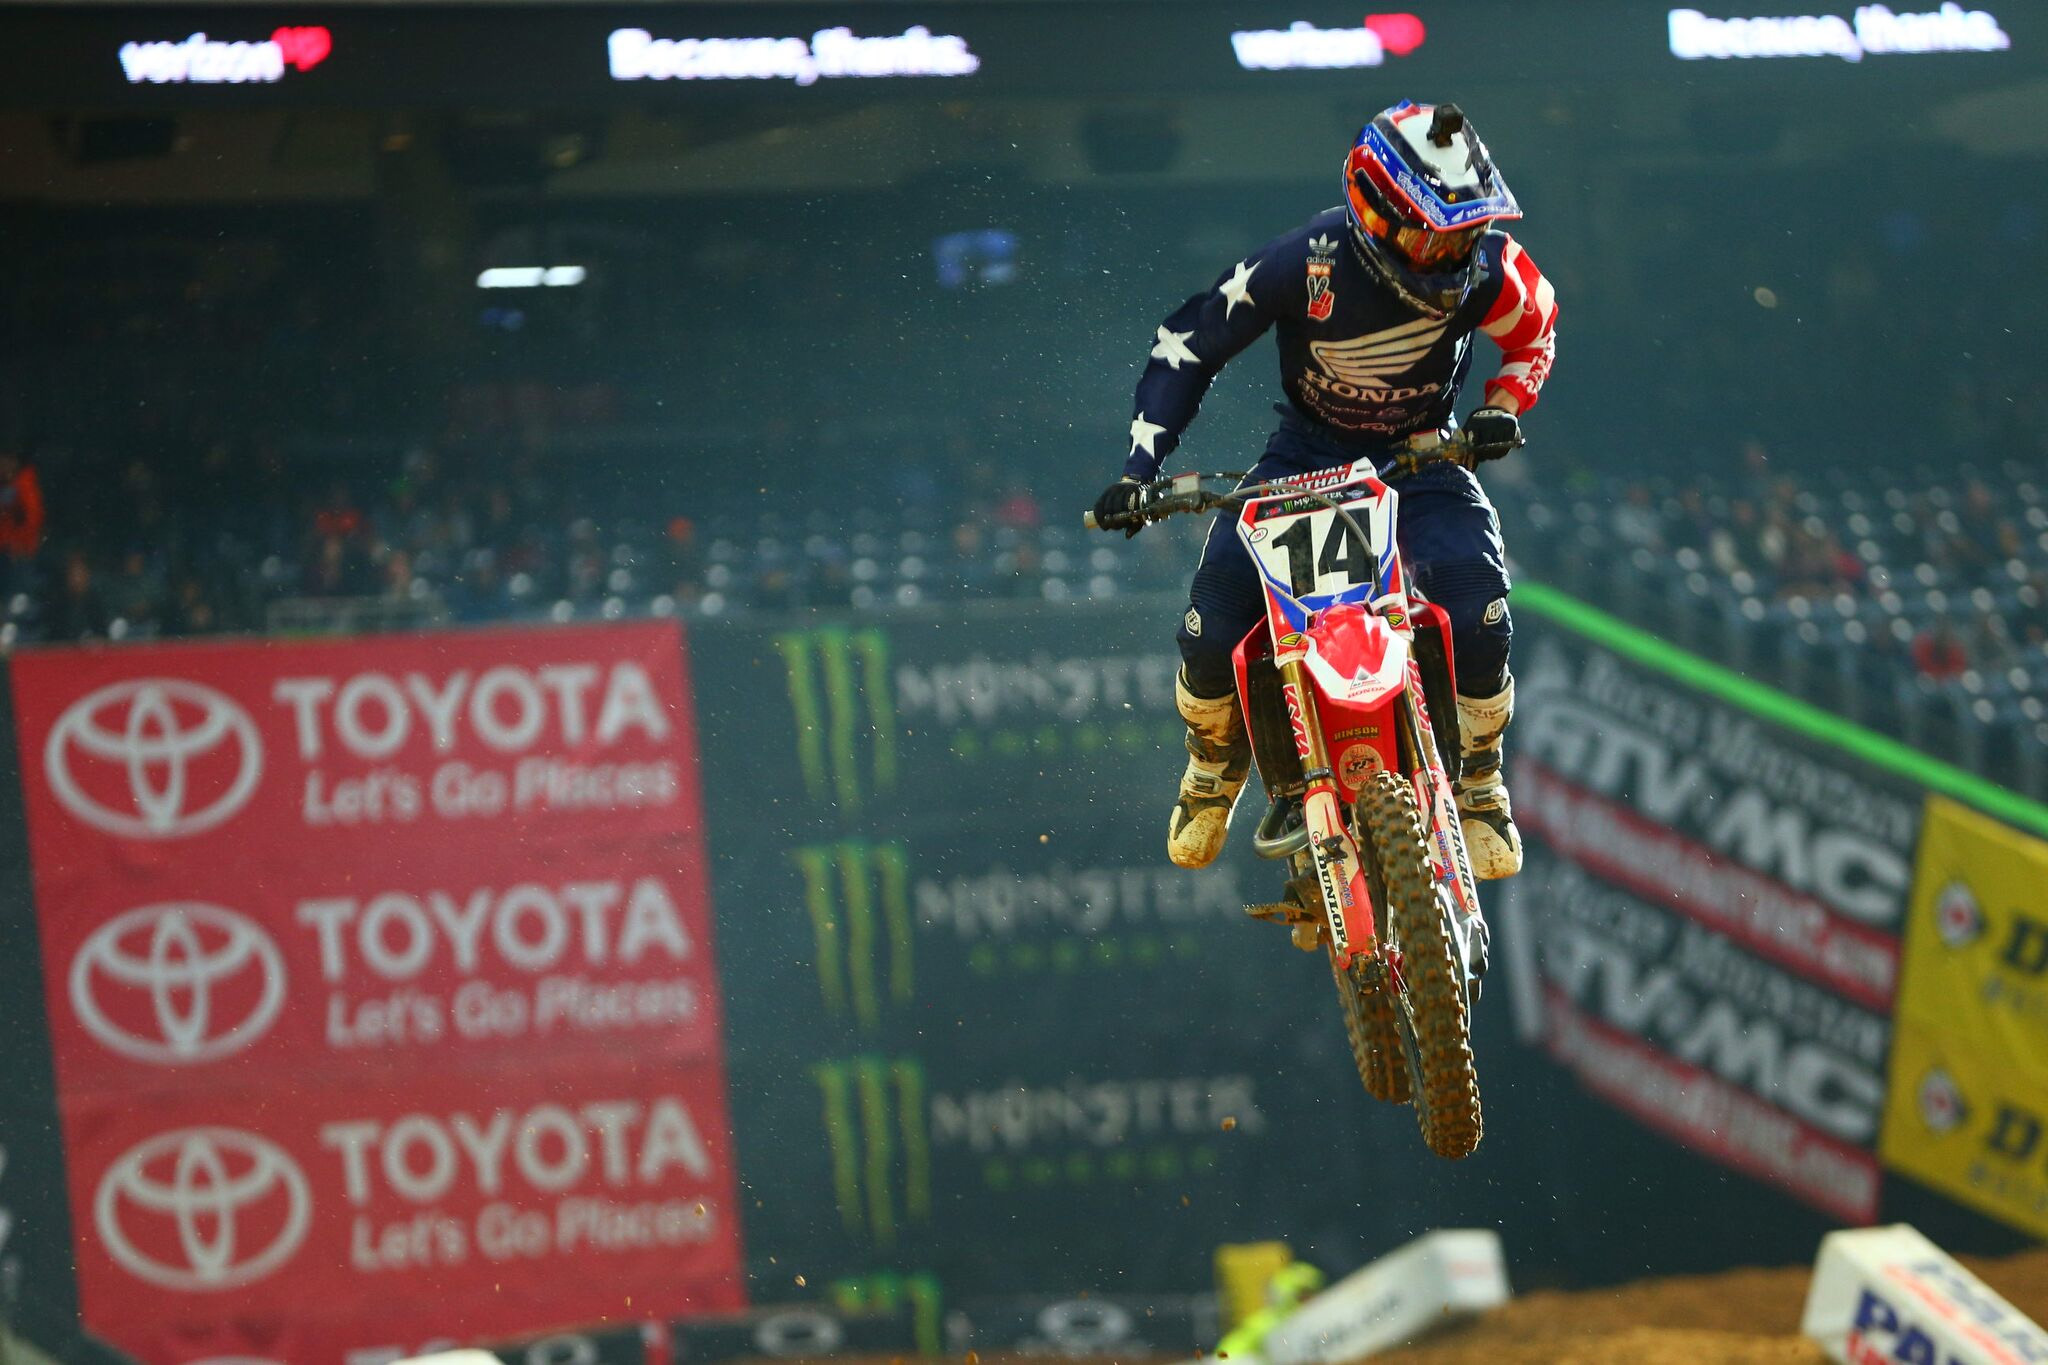 Cole Seely Troy Lee Designs - Houston SX